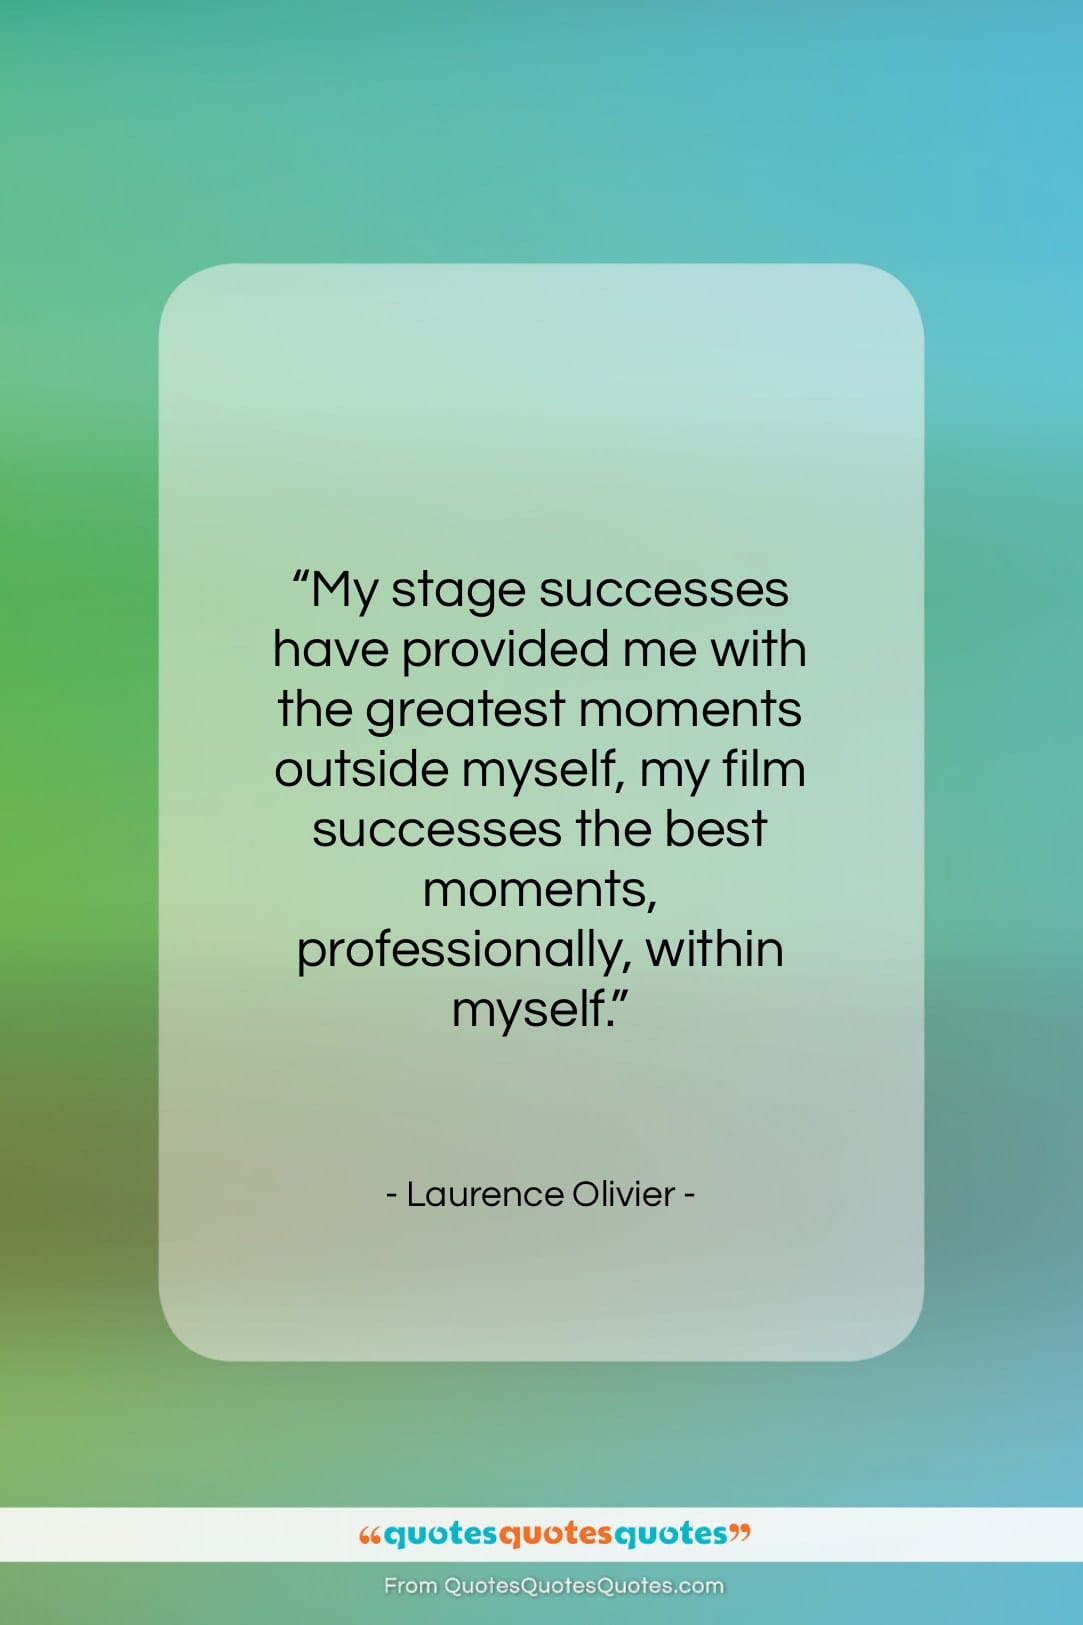 """Laurence Olivier quote: """"My stage successes have provided me with…""""- at QuotesQuotesQuotes.com"""